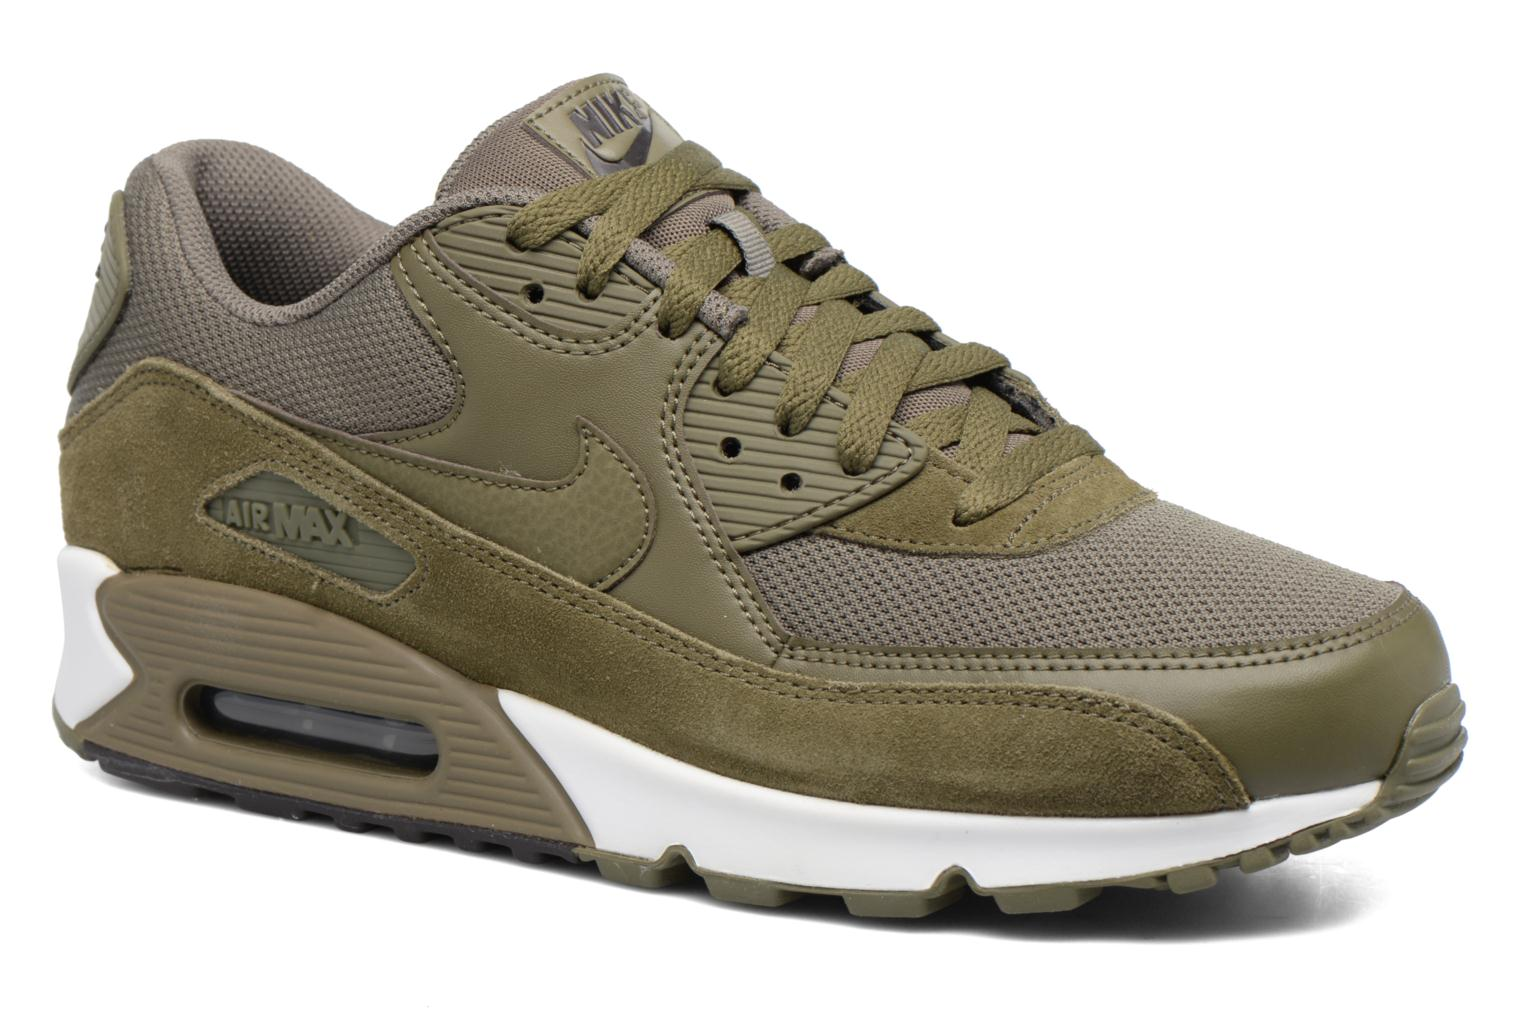 Nike Air Max 90 Essential Medium Olive/Medium Olive-Velvet Brown